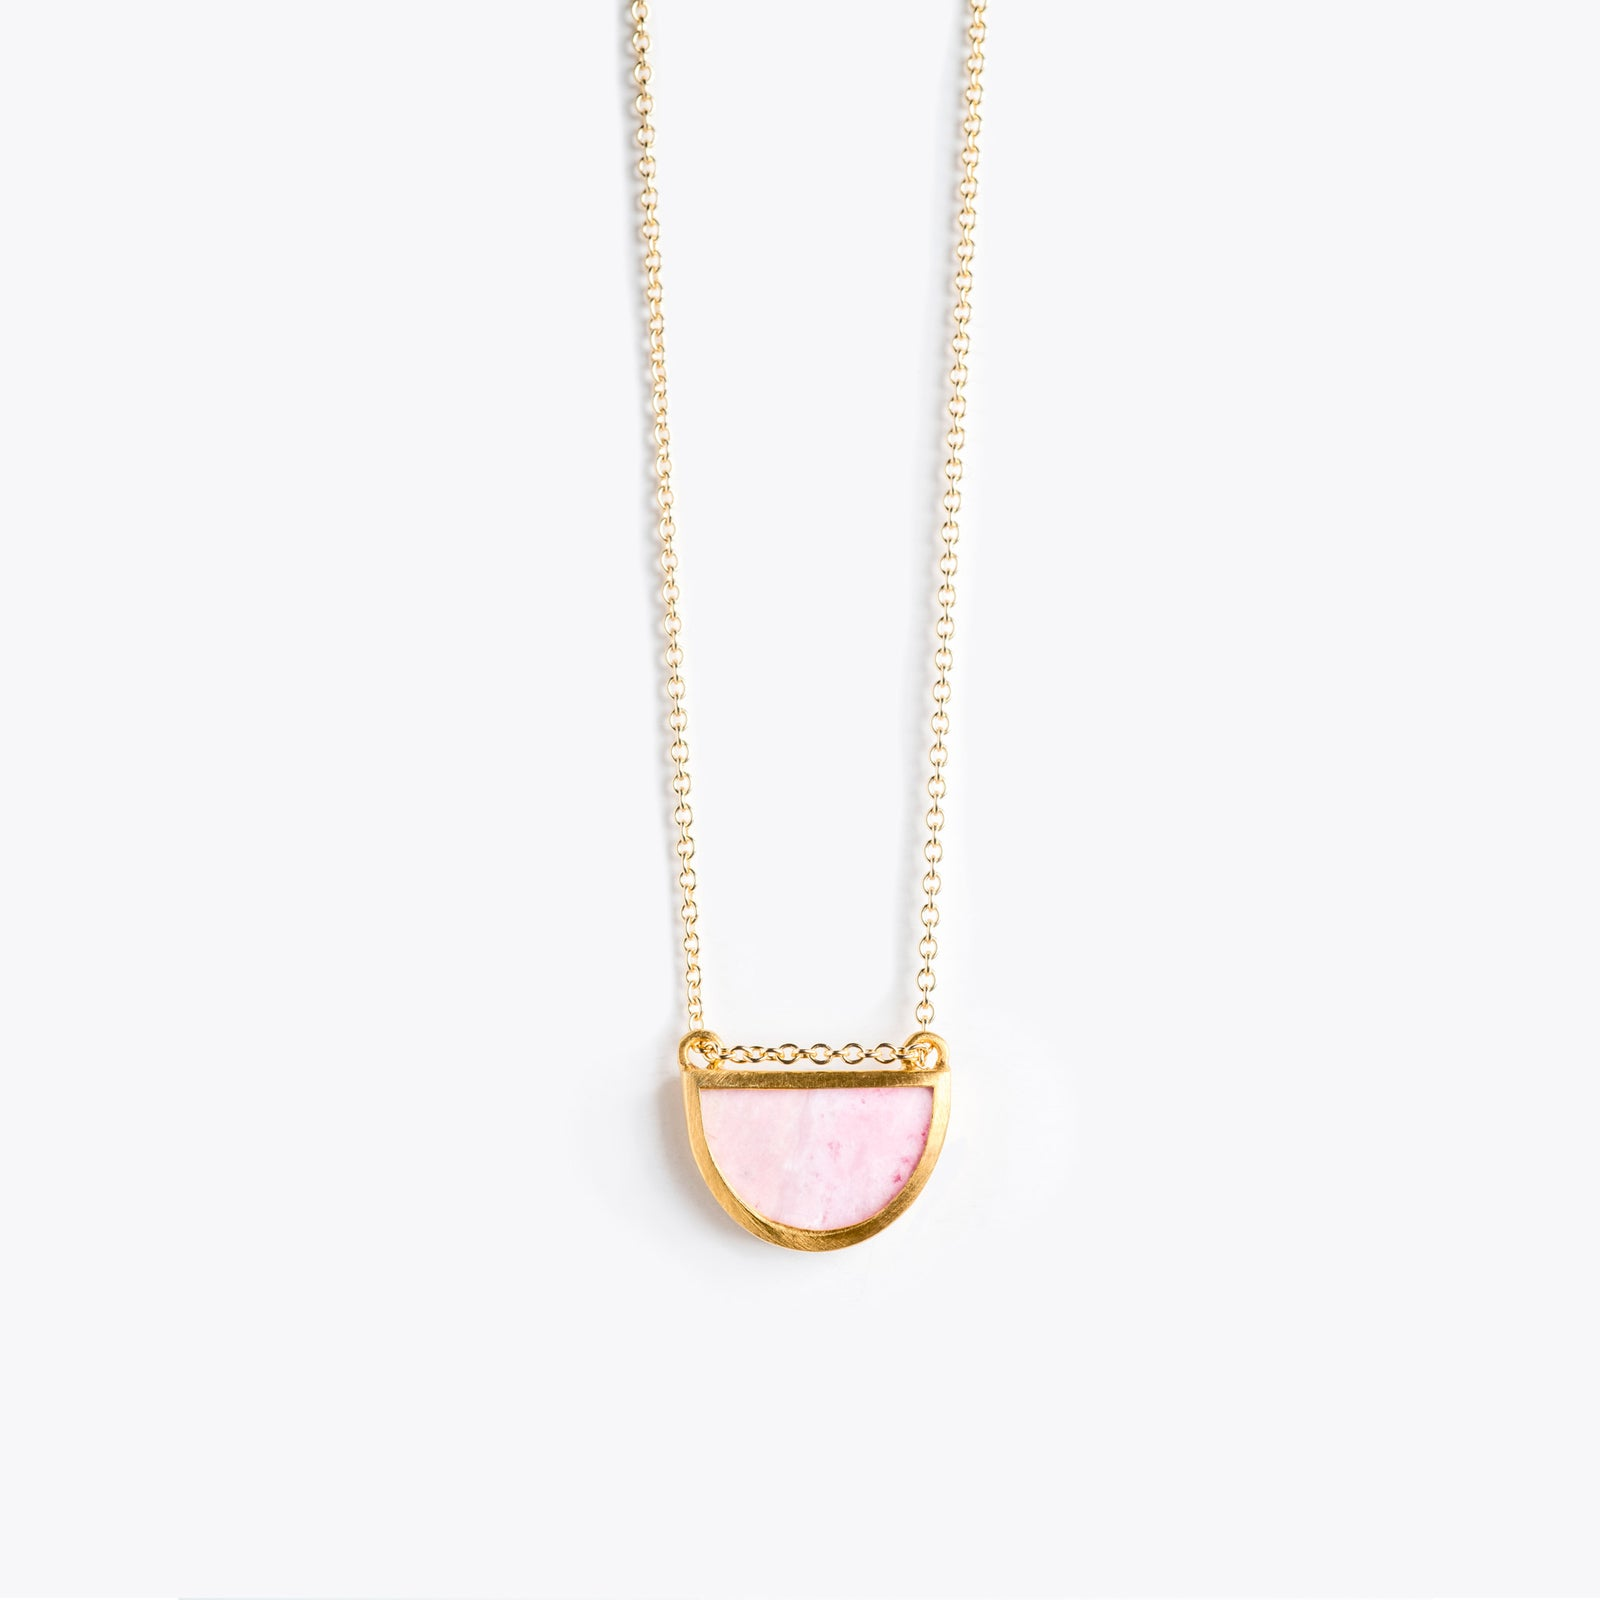 Wanderlust Life Ethically Handmade jewellery made in the UK. Minimalist gold and fine cord jewellery. sunburst fine gold chain necklace, pink rhodonite